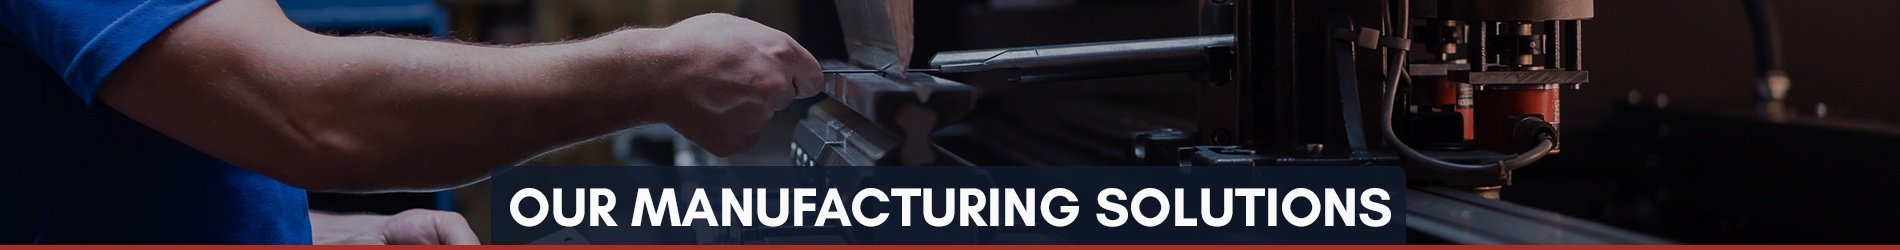 BSP_Industry_Solutions_Manufacturing_Header.jpg